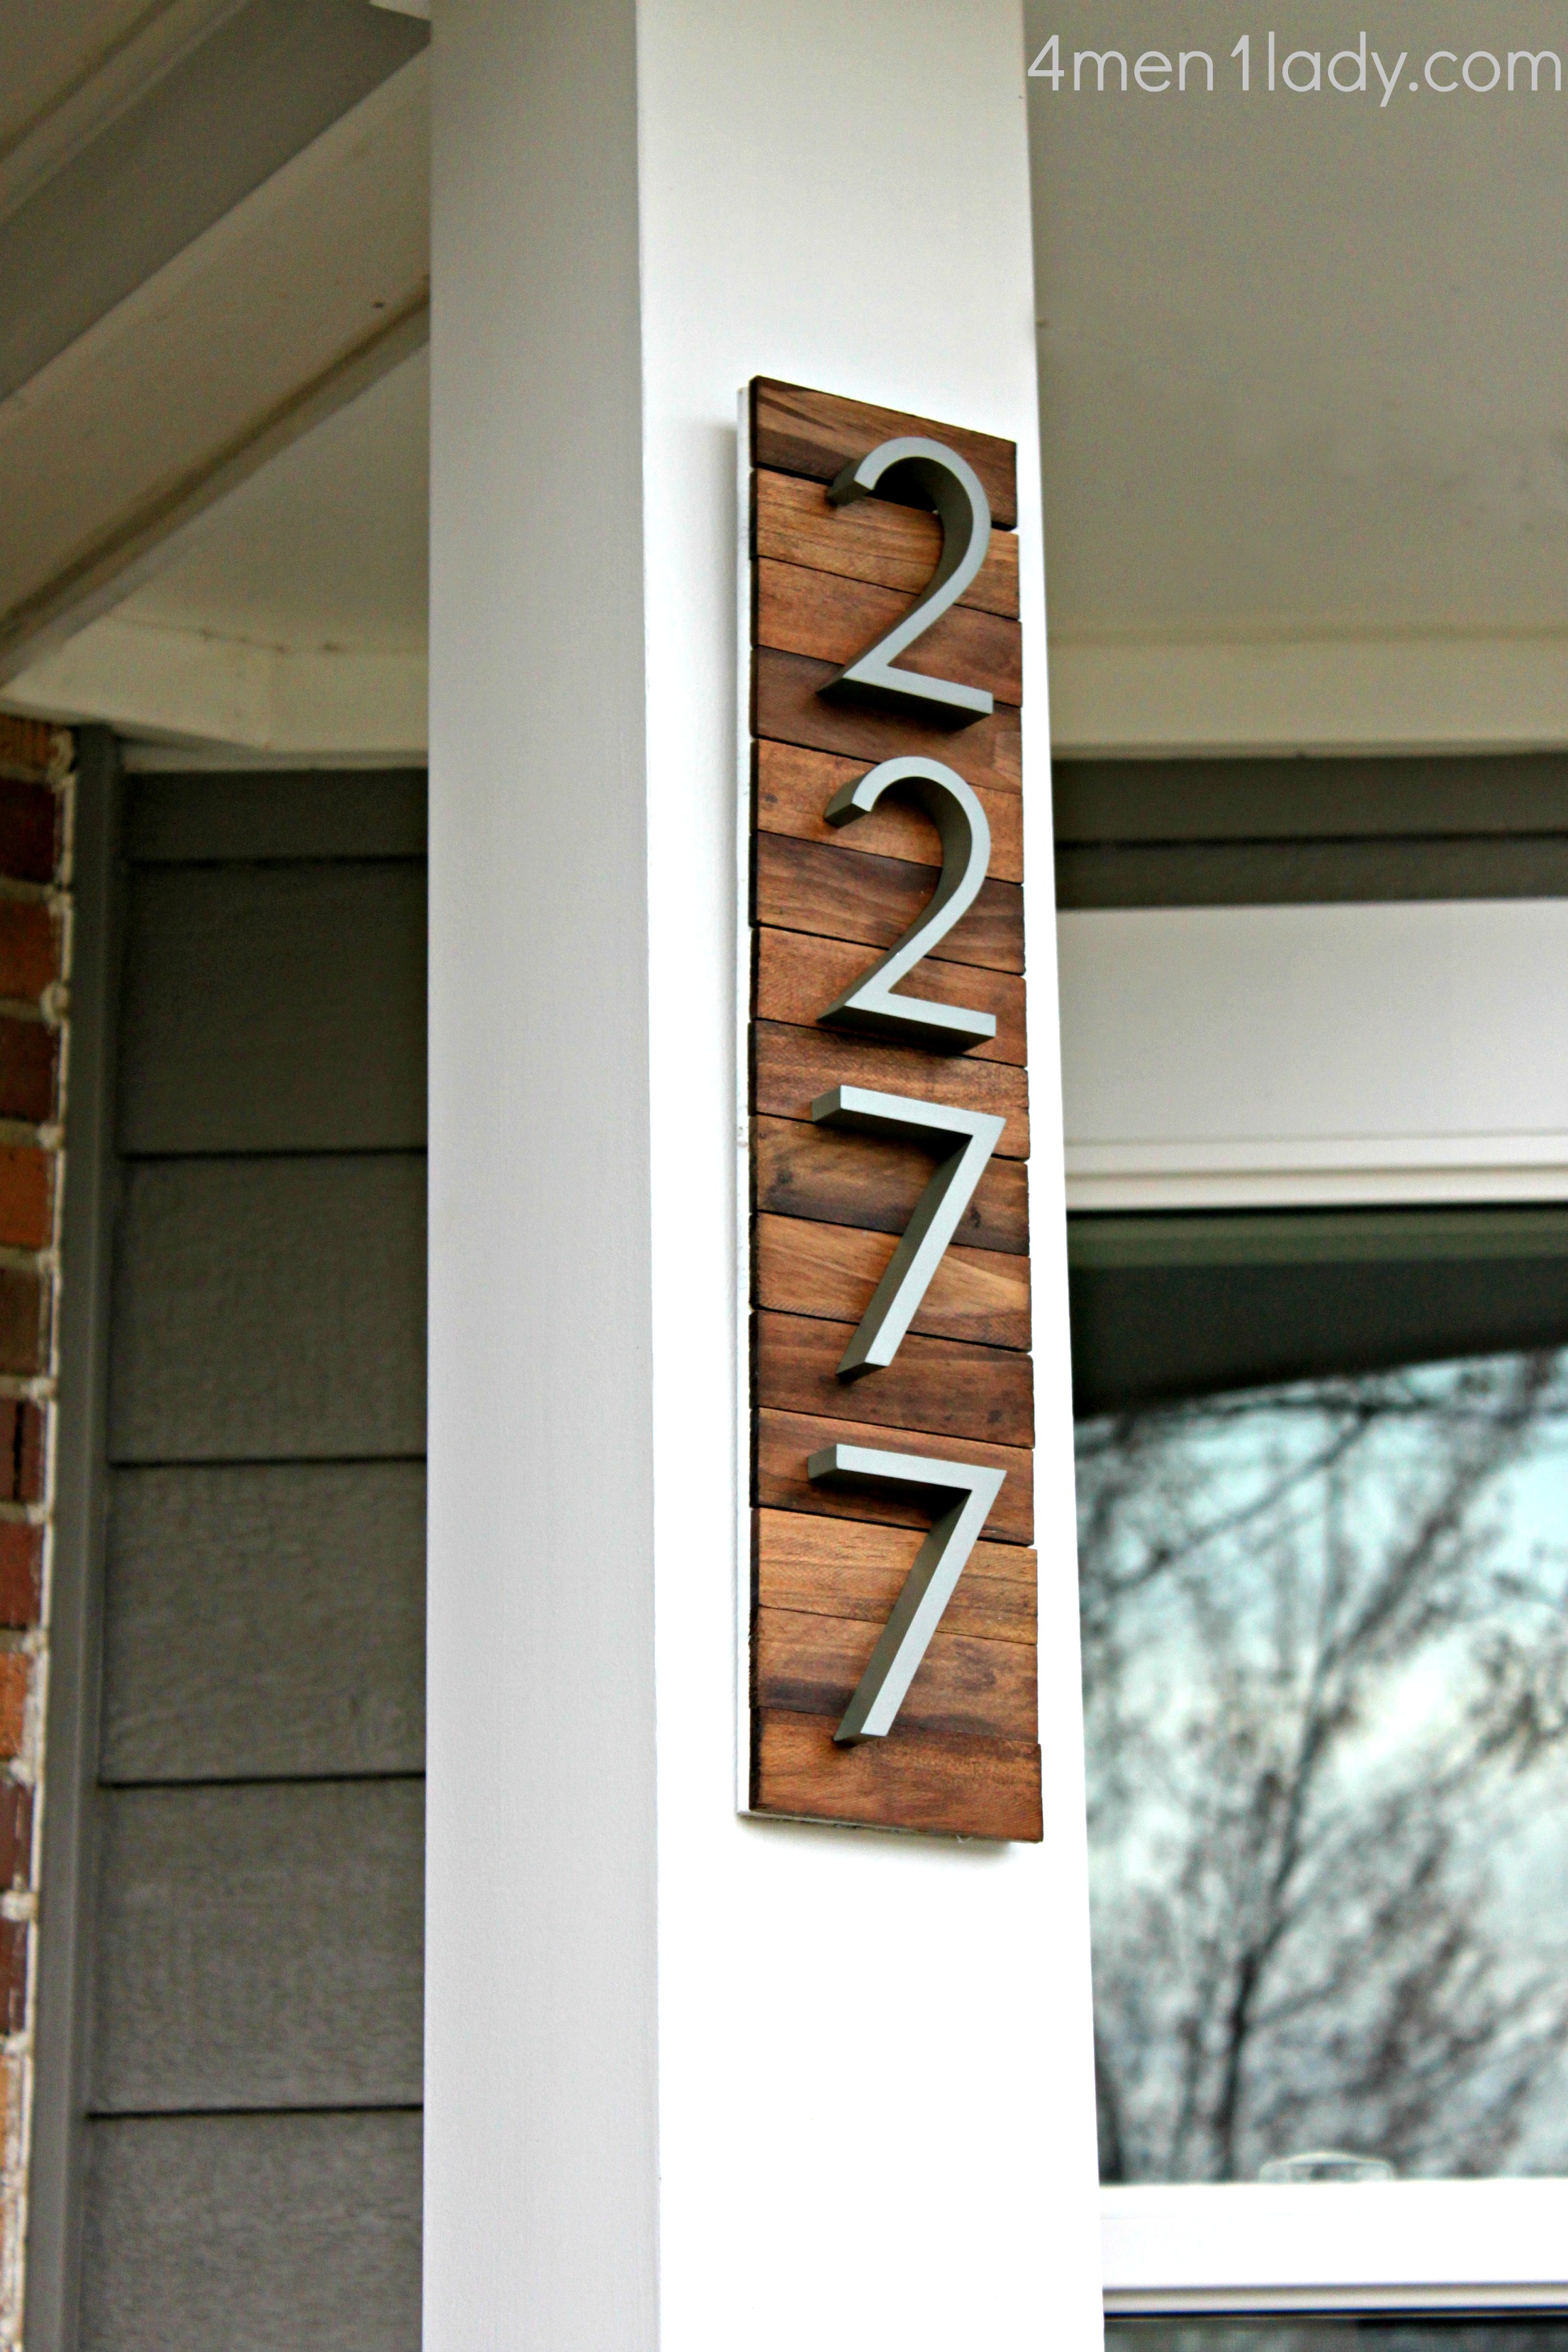 Creative diy house number ideas - House number plaque ideas ...